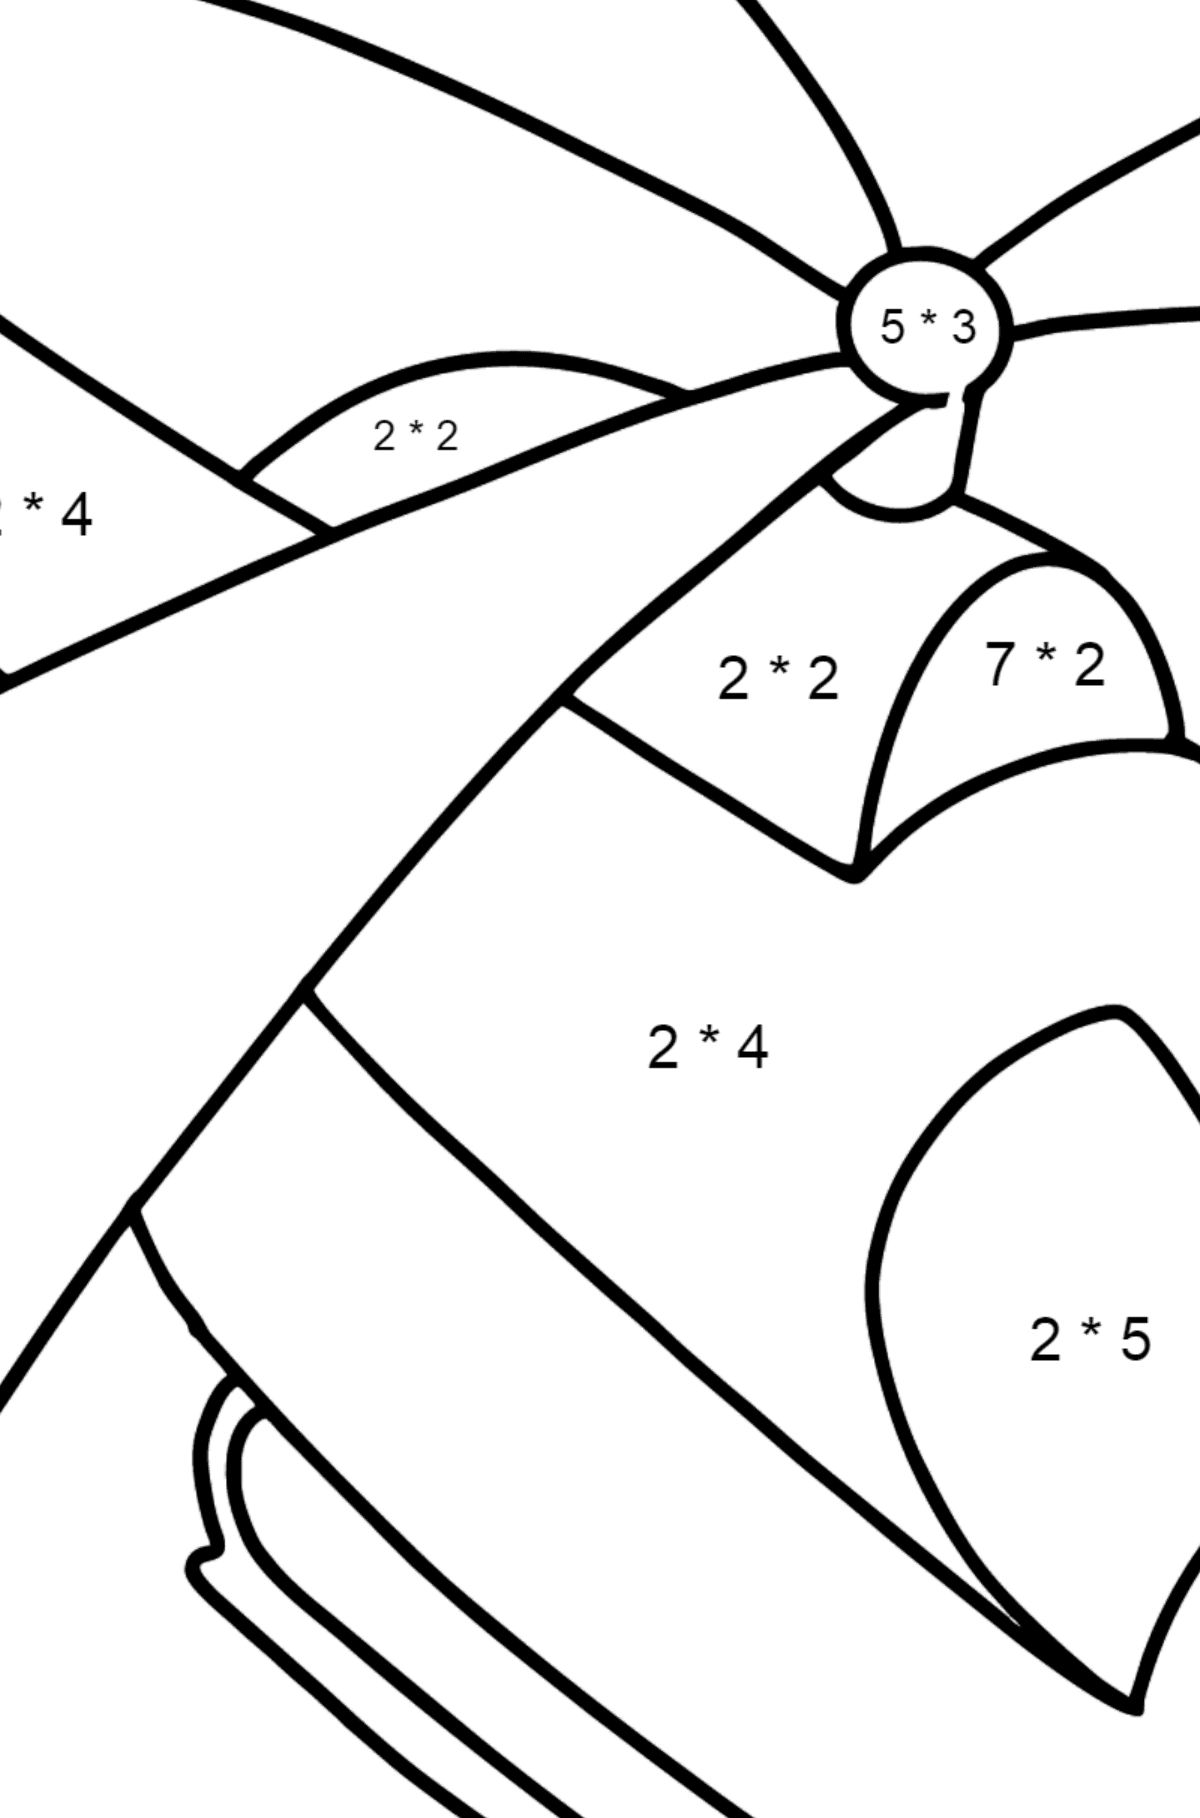 Little Helicopter coloring page - Math Coloring - Multiplication for Kids